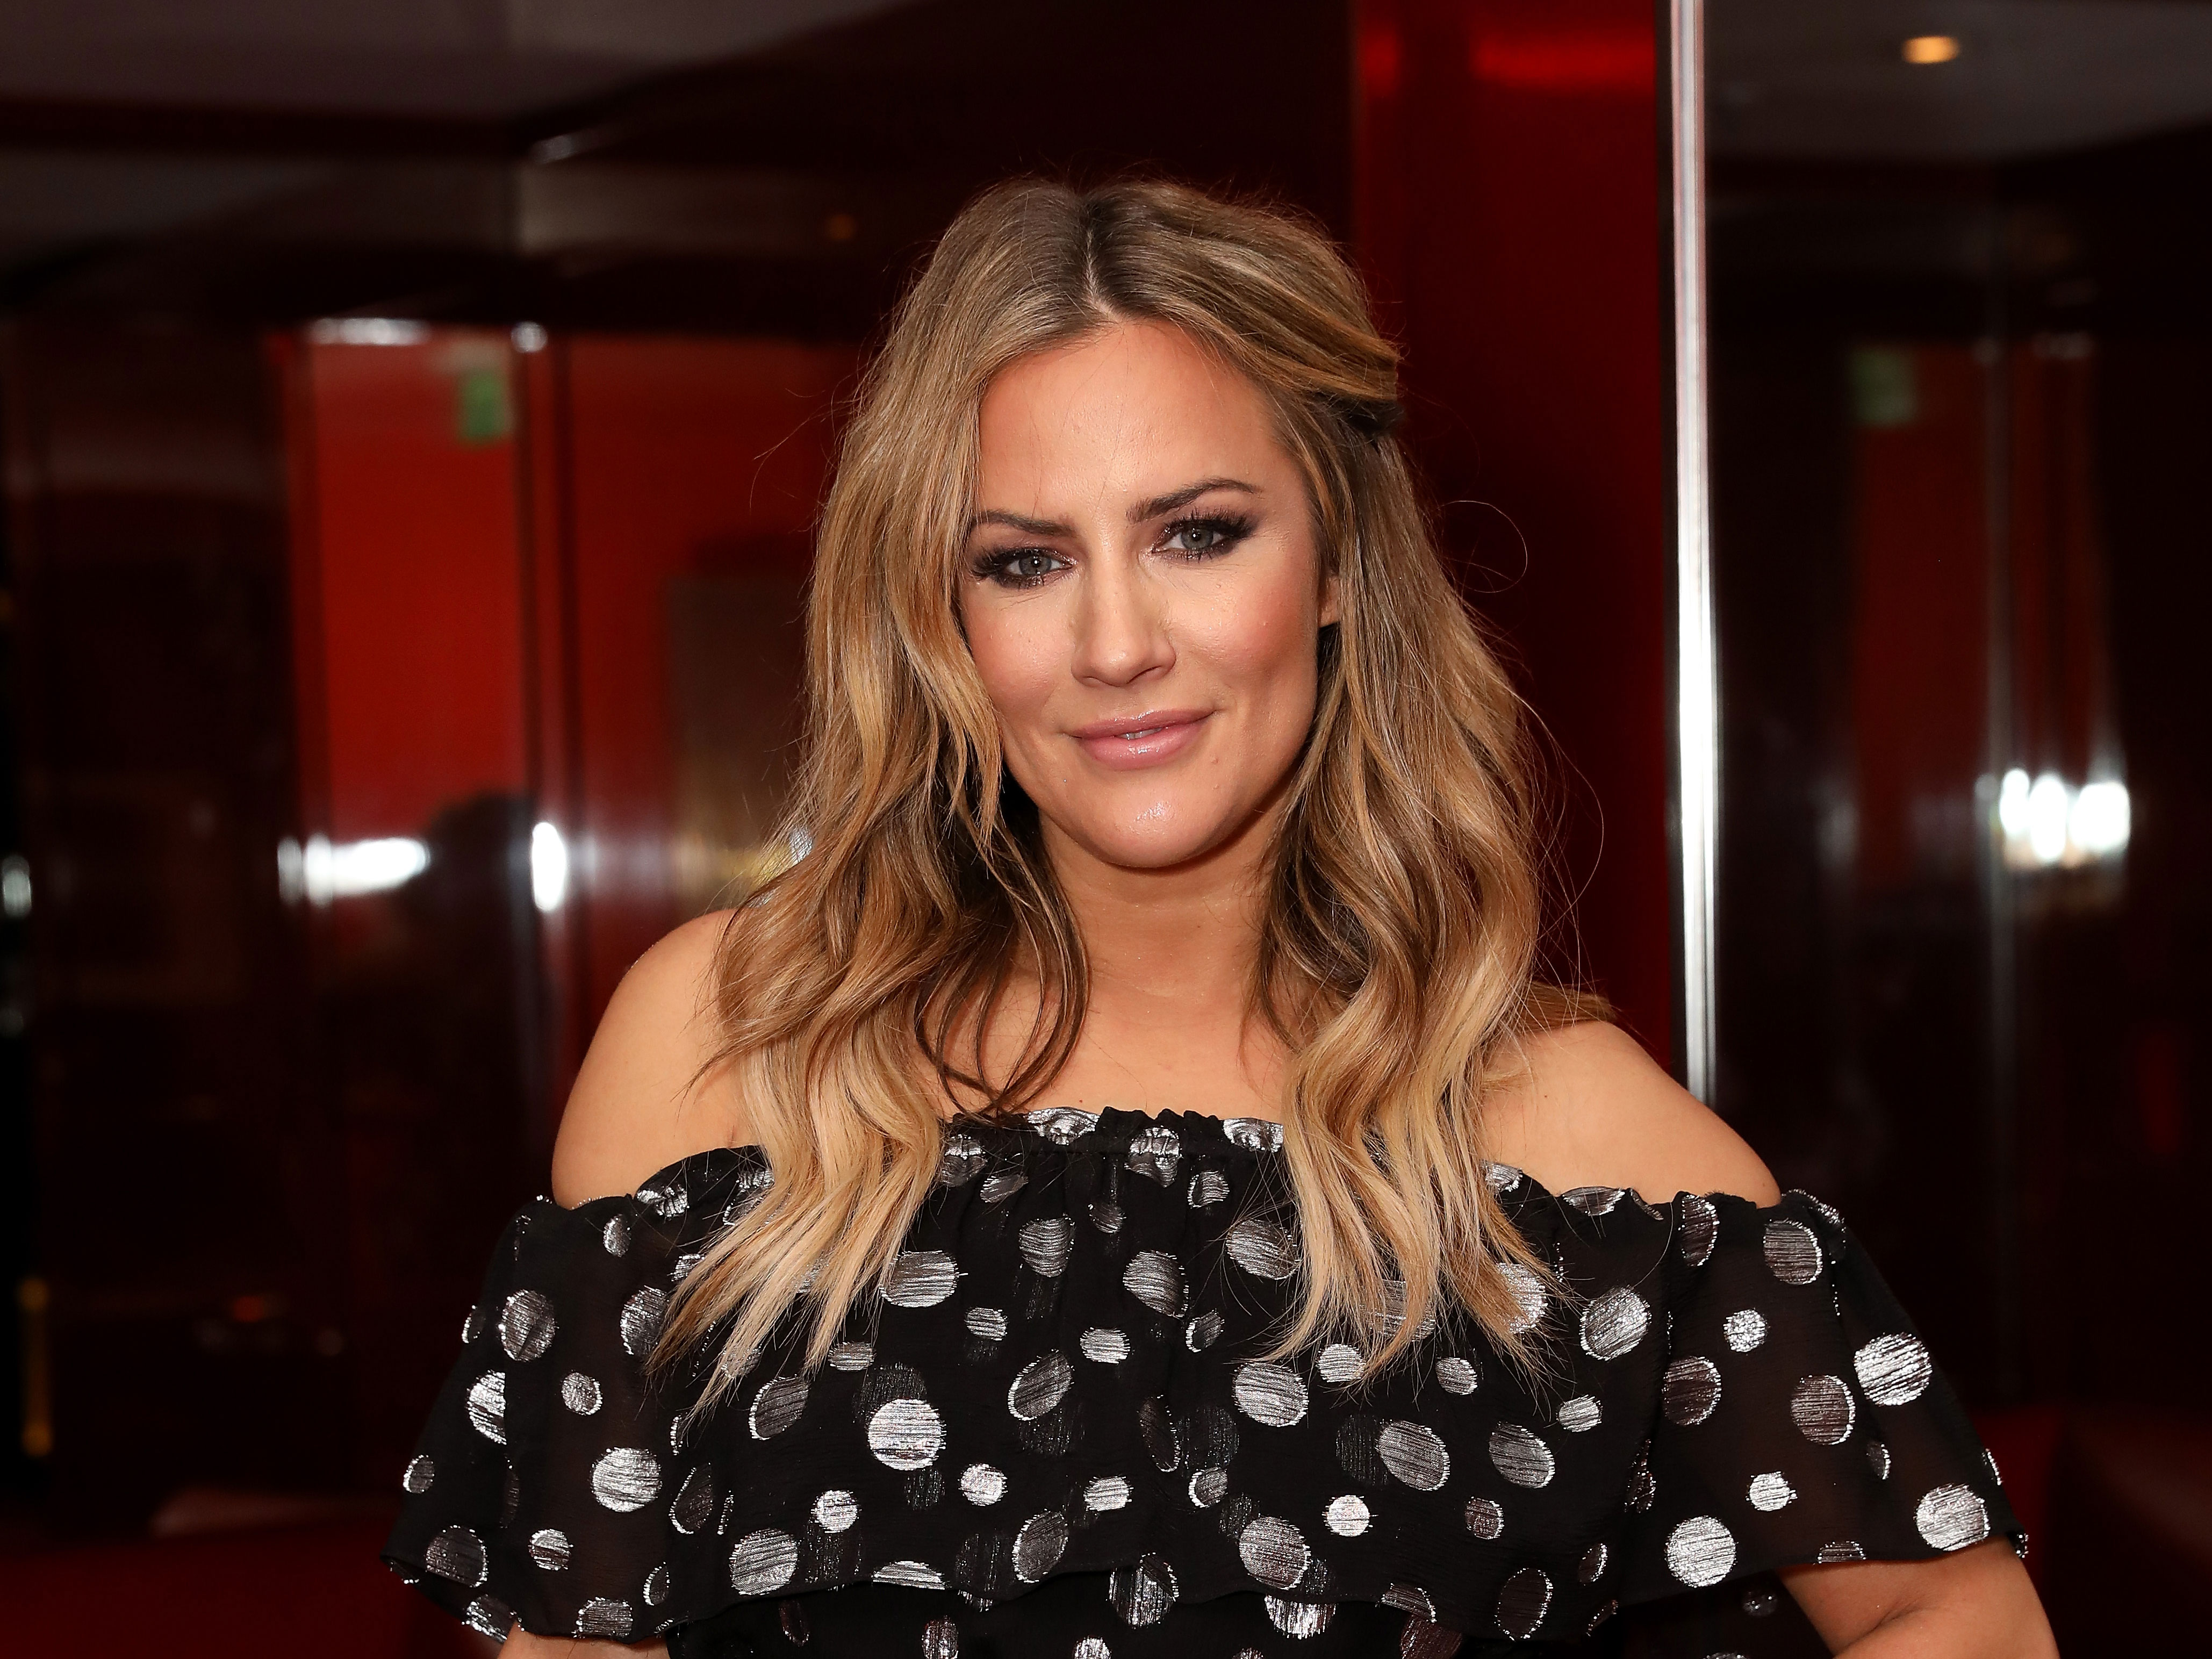 Caroline Flack teased over relationship with Harry Styles as bares thighs in unbelievably revealing snap